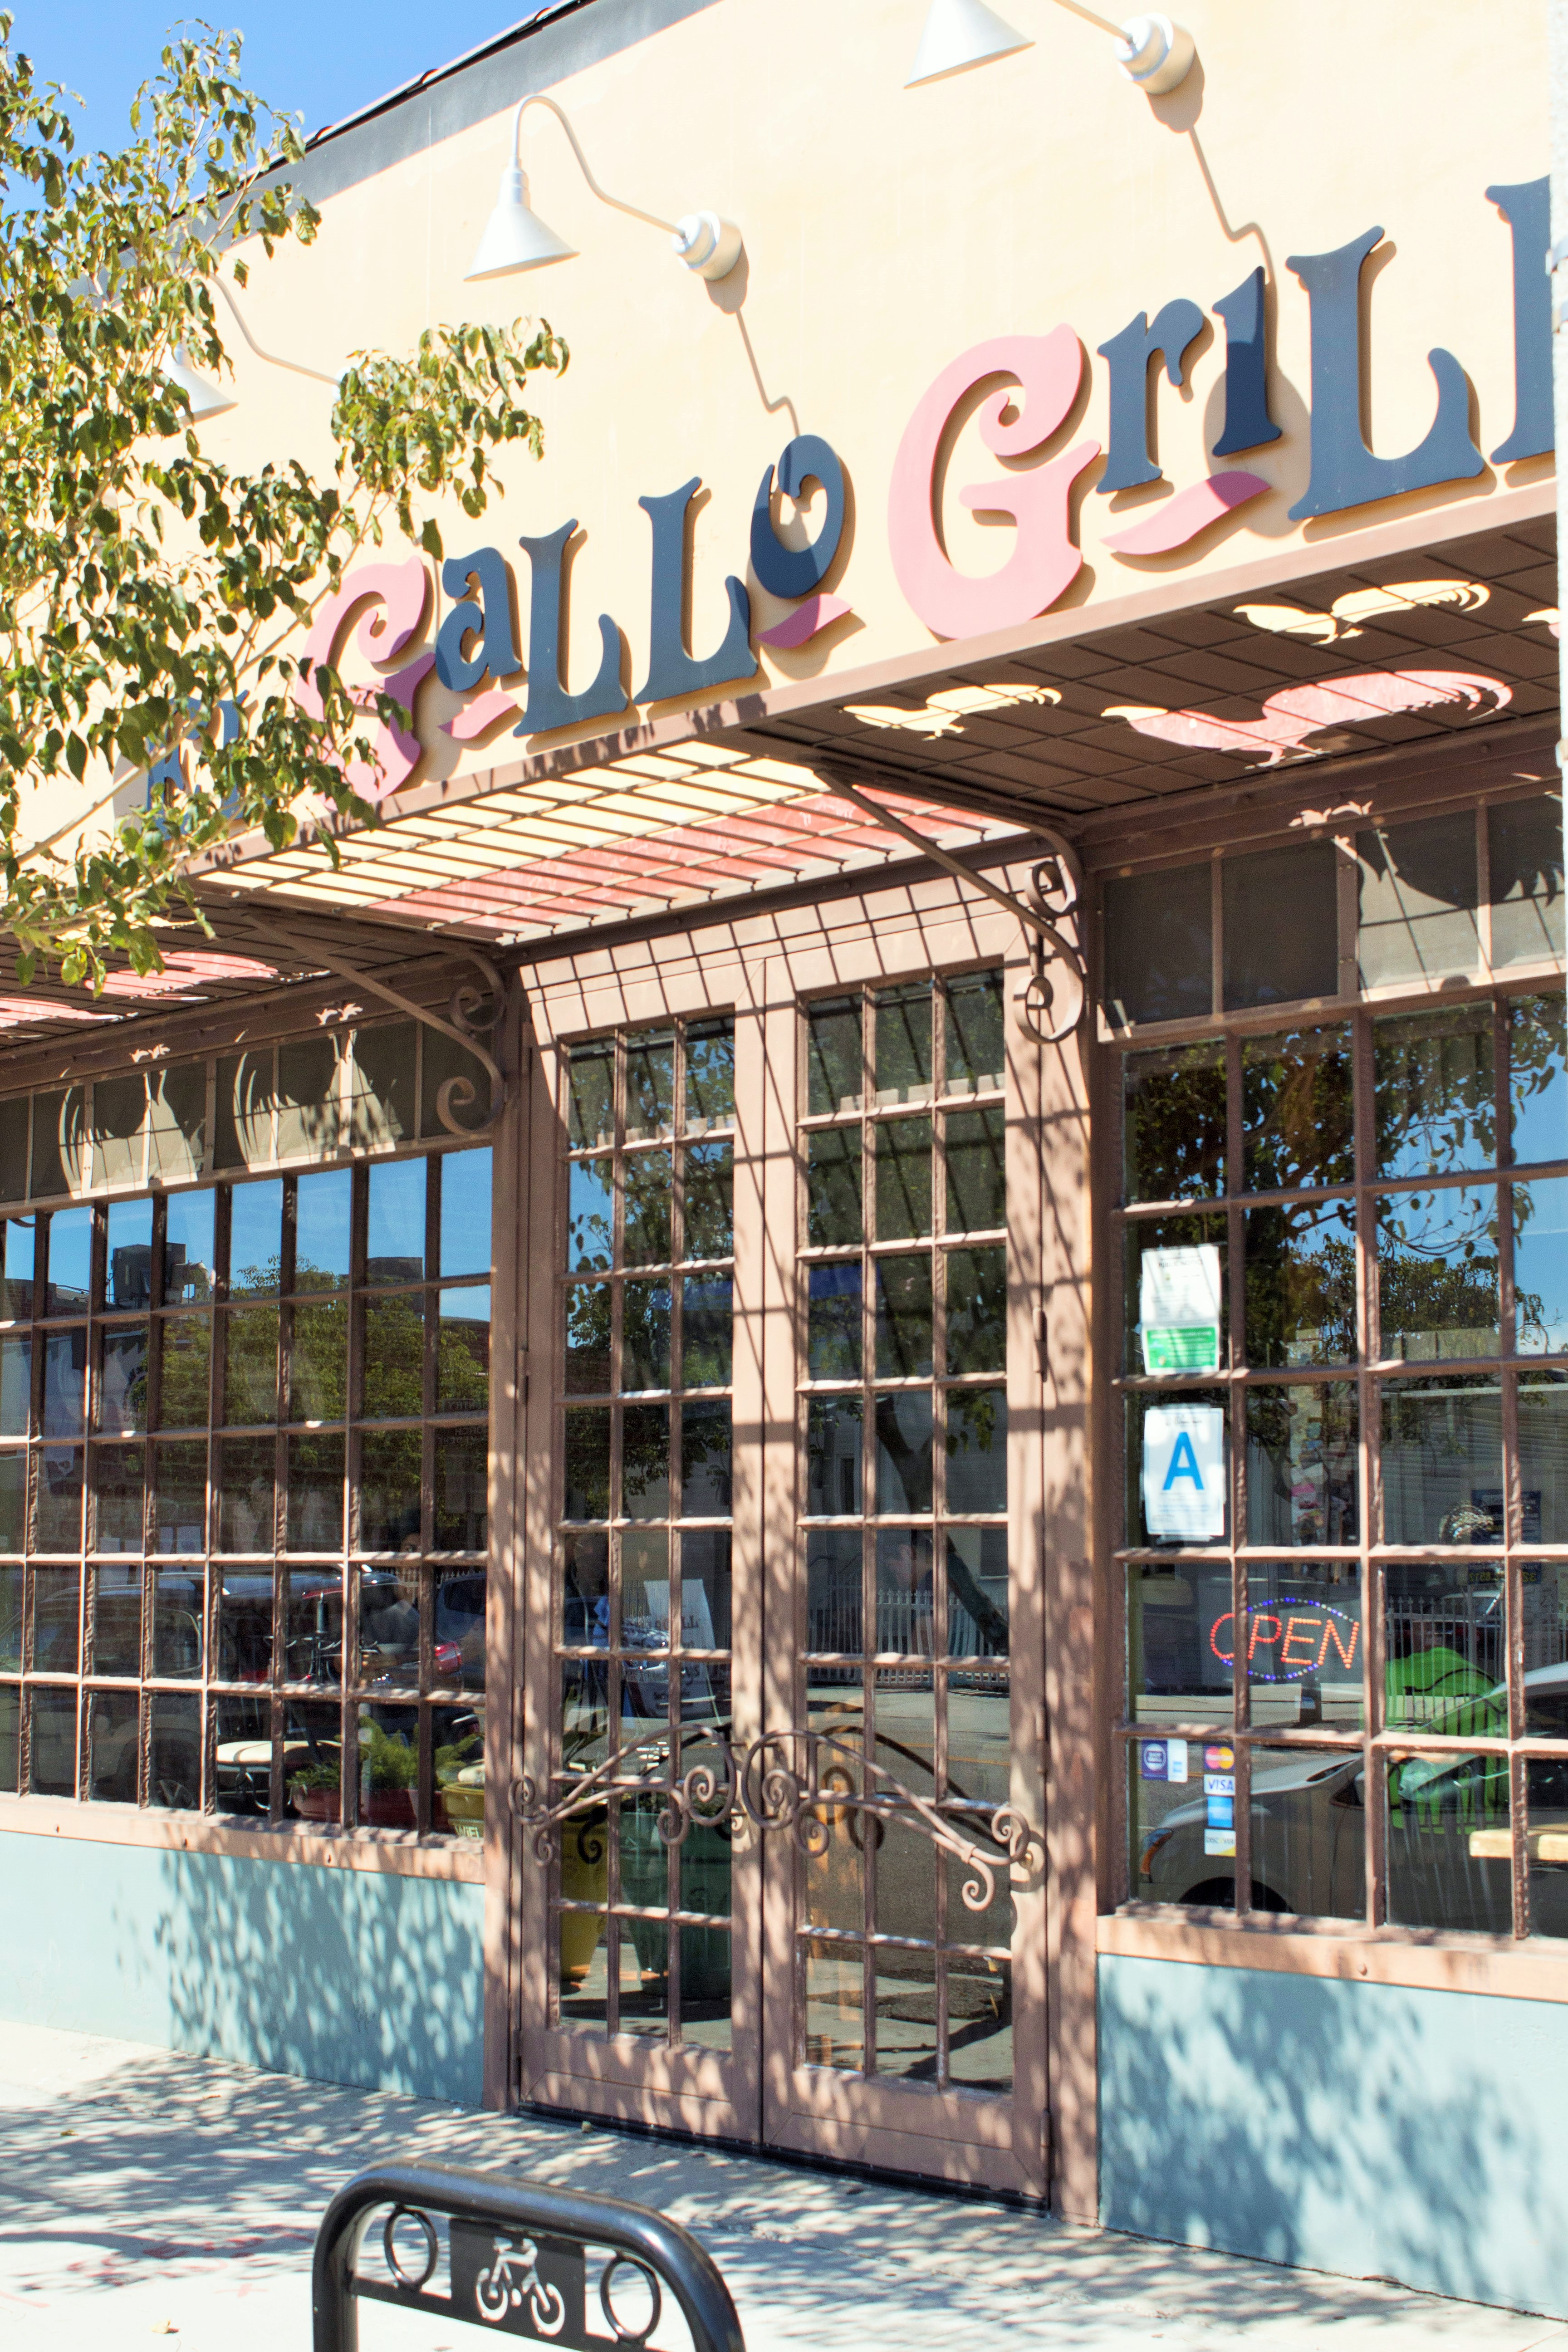 el gallo grill in east los angeles has the perfect patio and it was